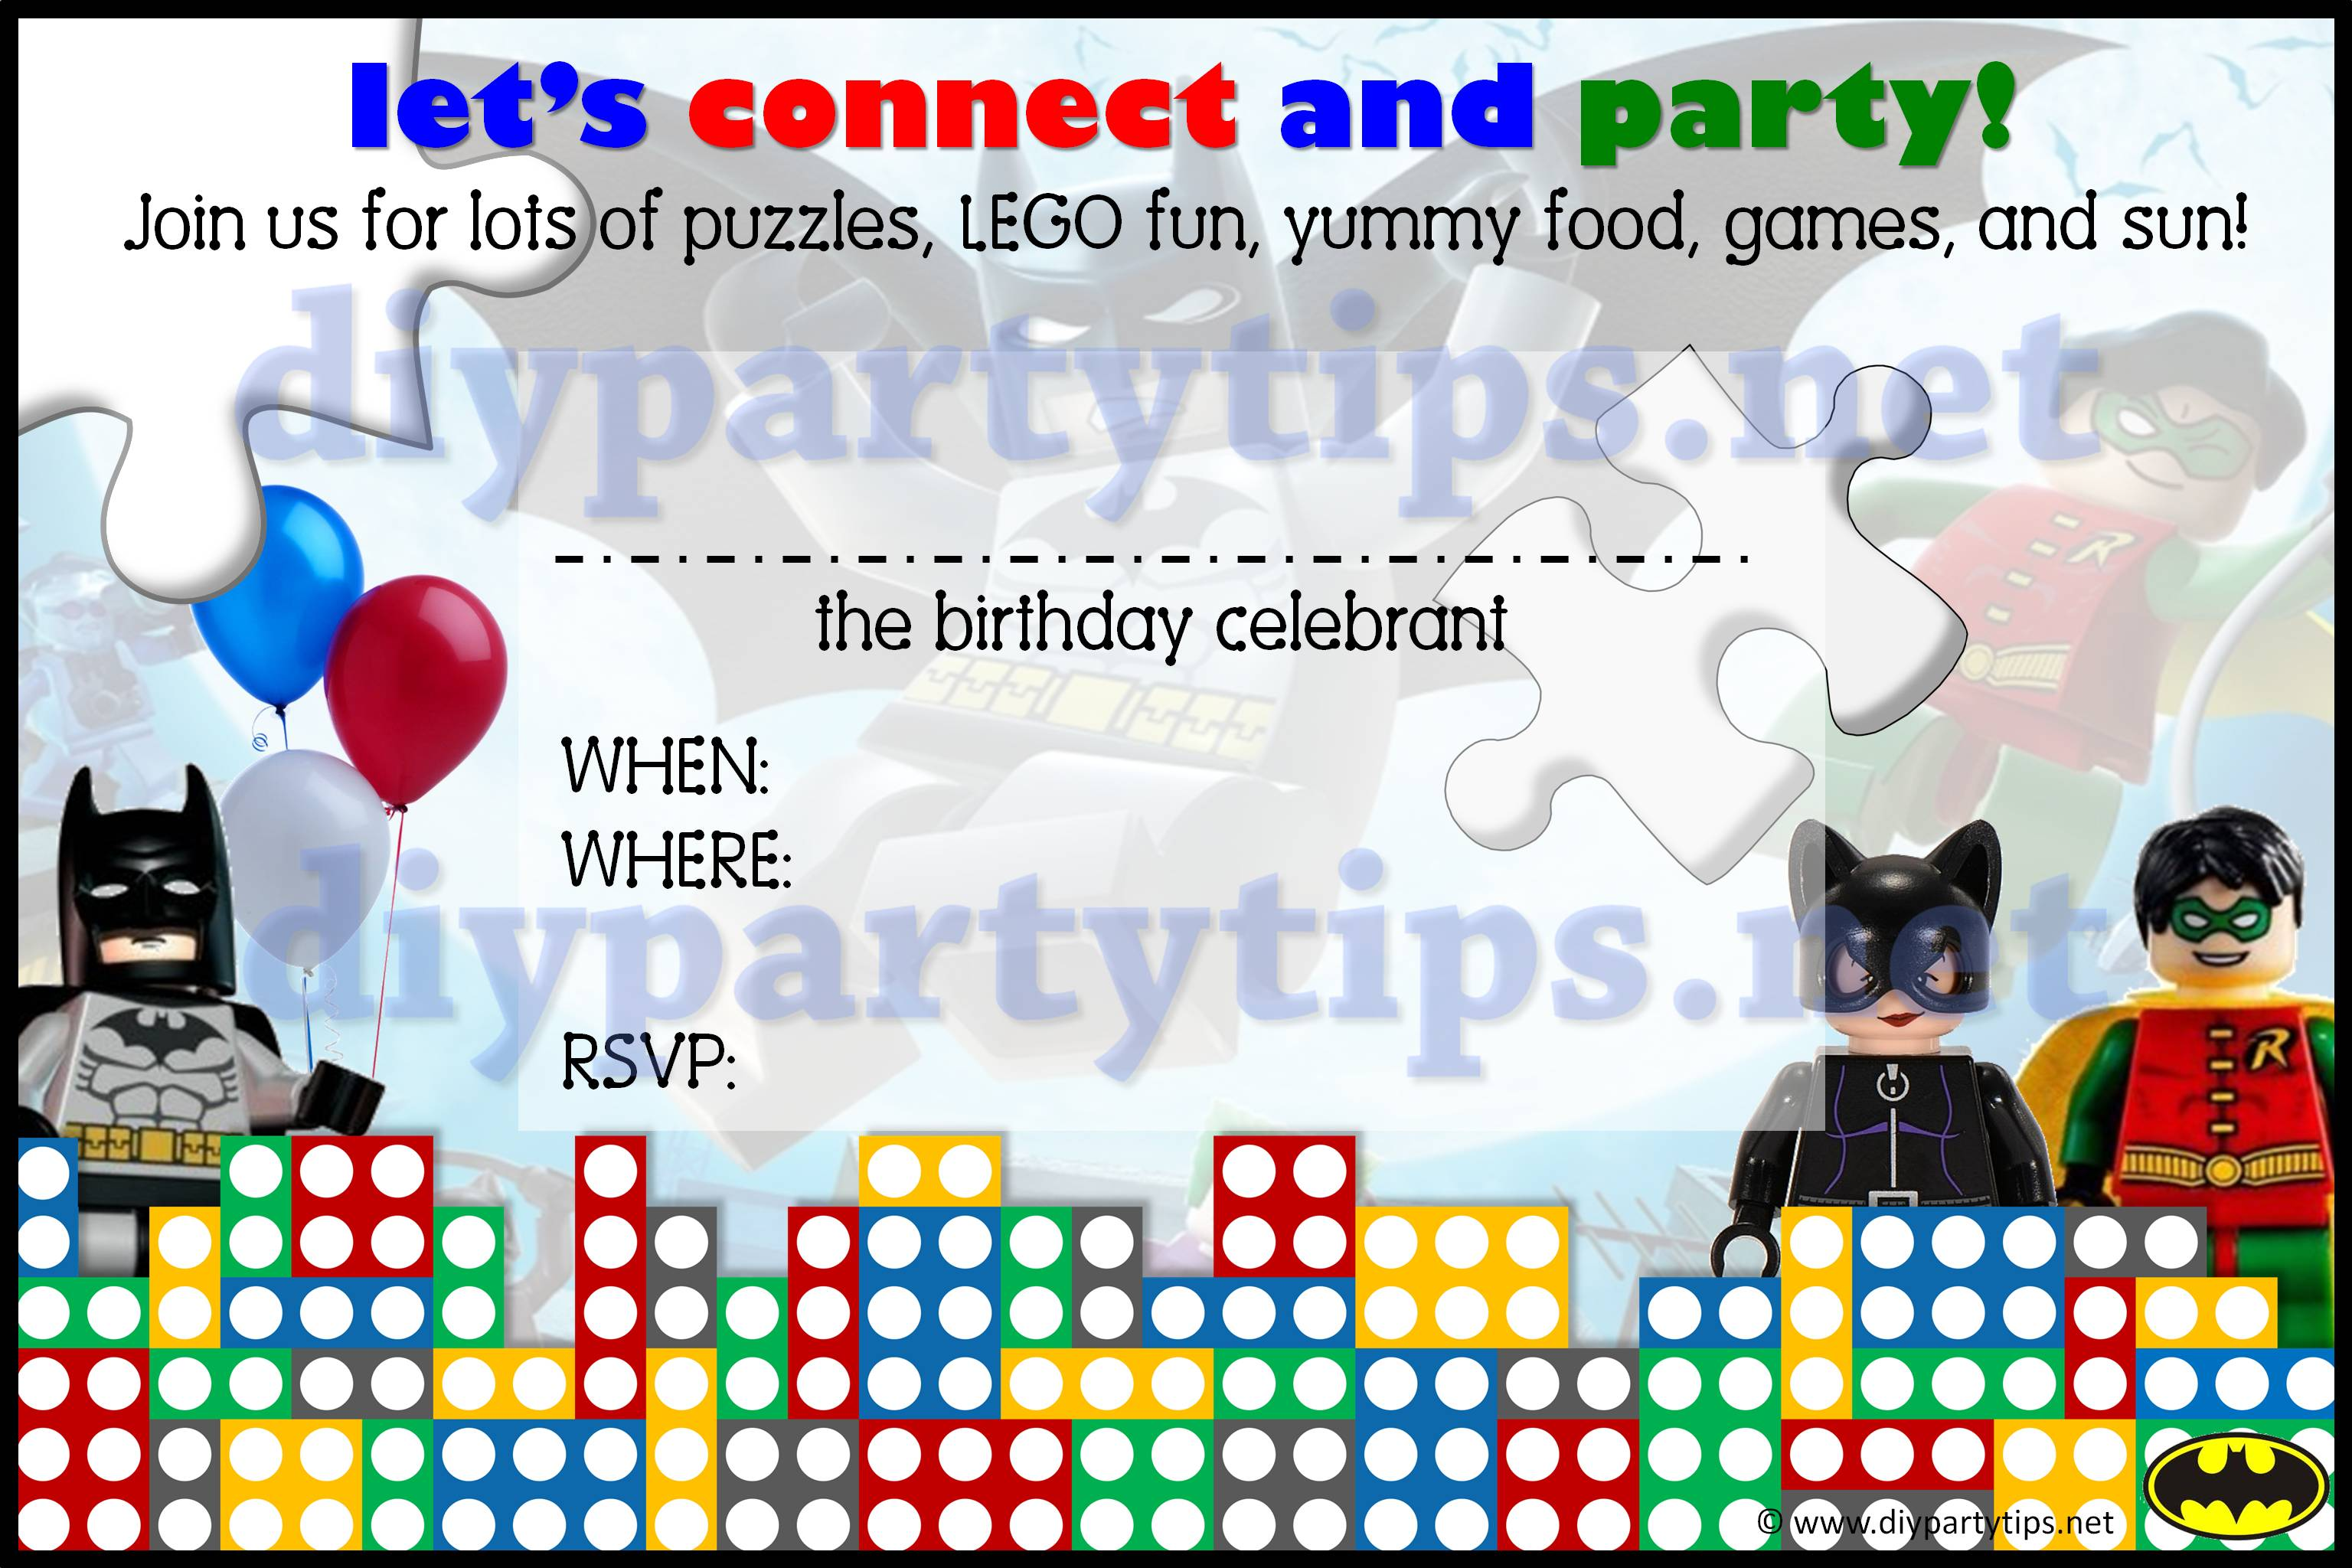 free printable birthday invitation templates for boys ; Lego-Birthday-Invitation-Template-Lolas-DIY-Party-Tips-Watermark